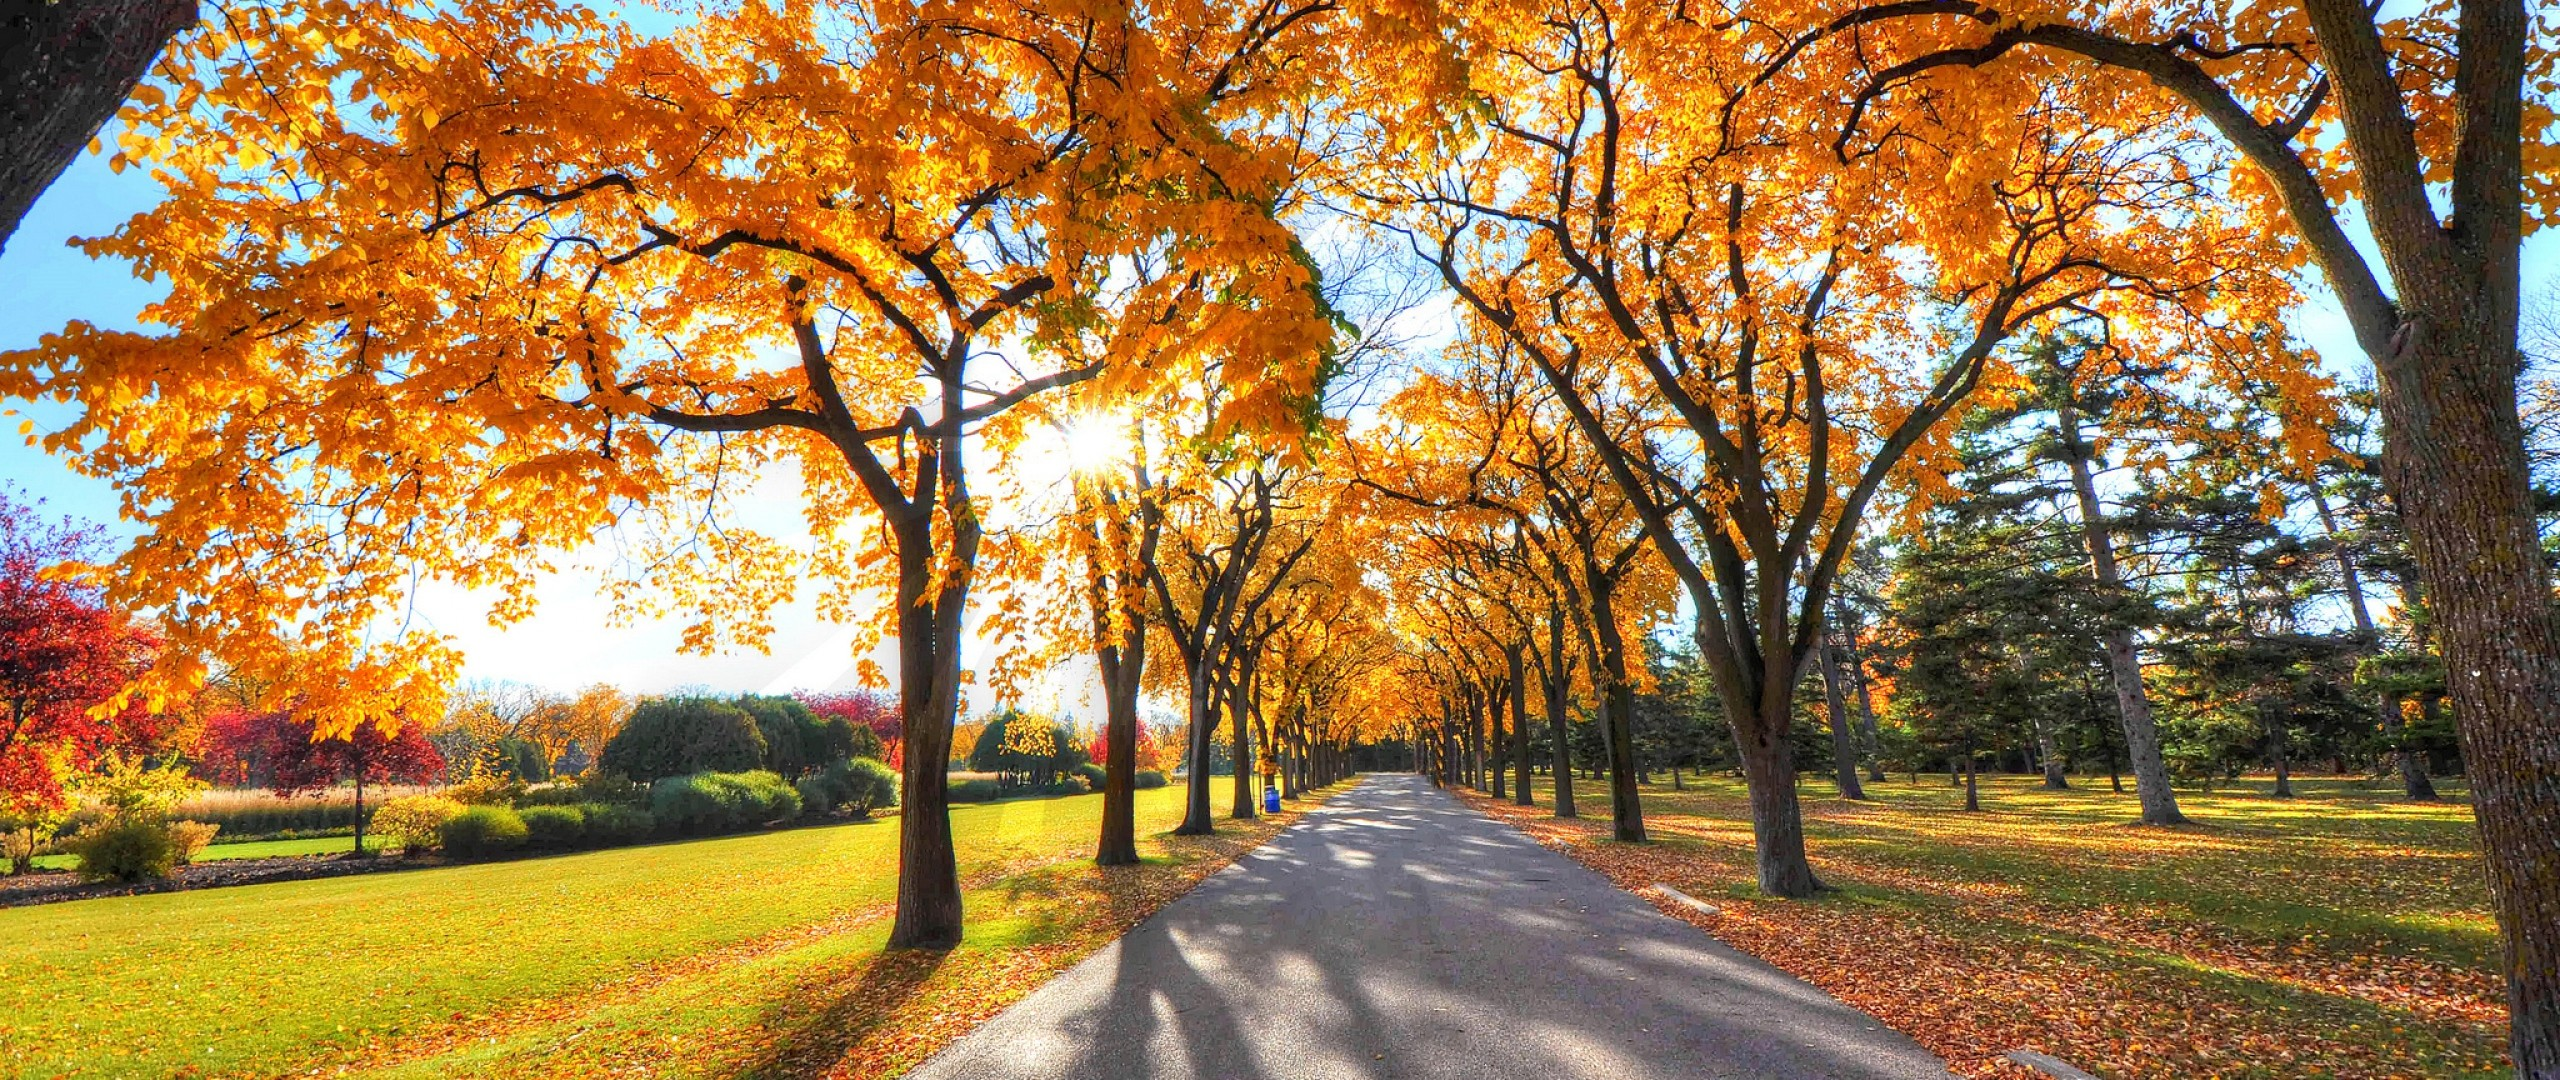 Falling Leaves Live Wallpaper Android Download Autumn Screen Wallpaper 64 Images